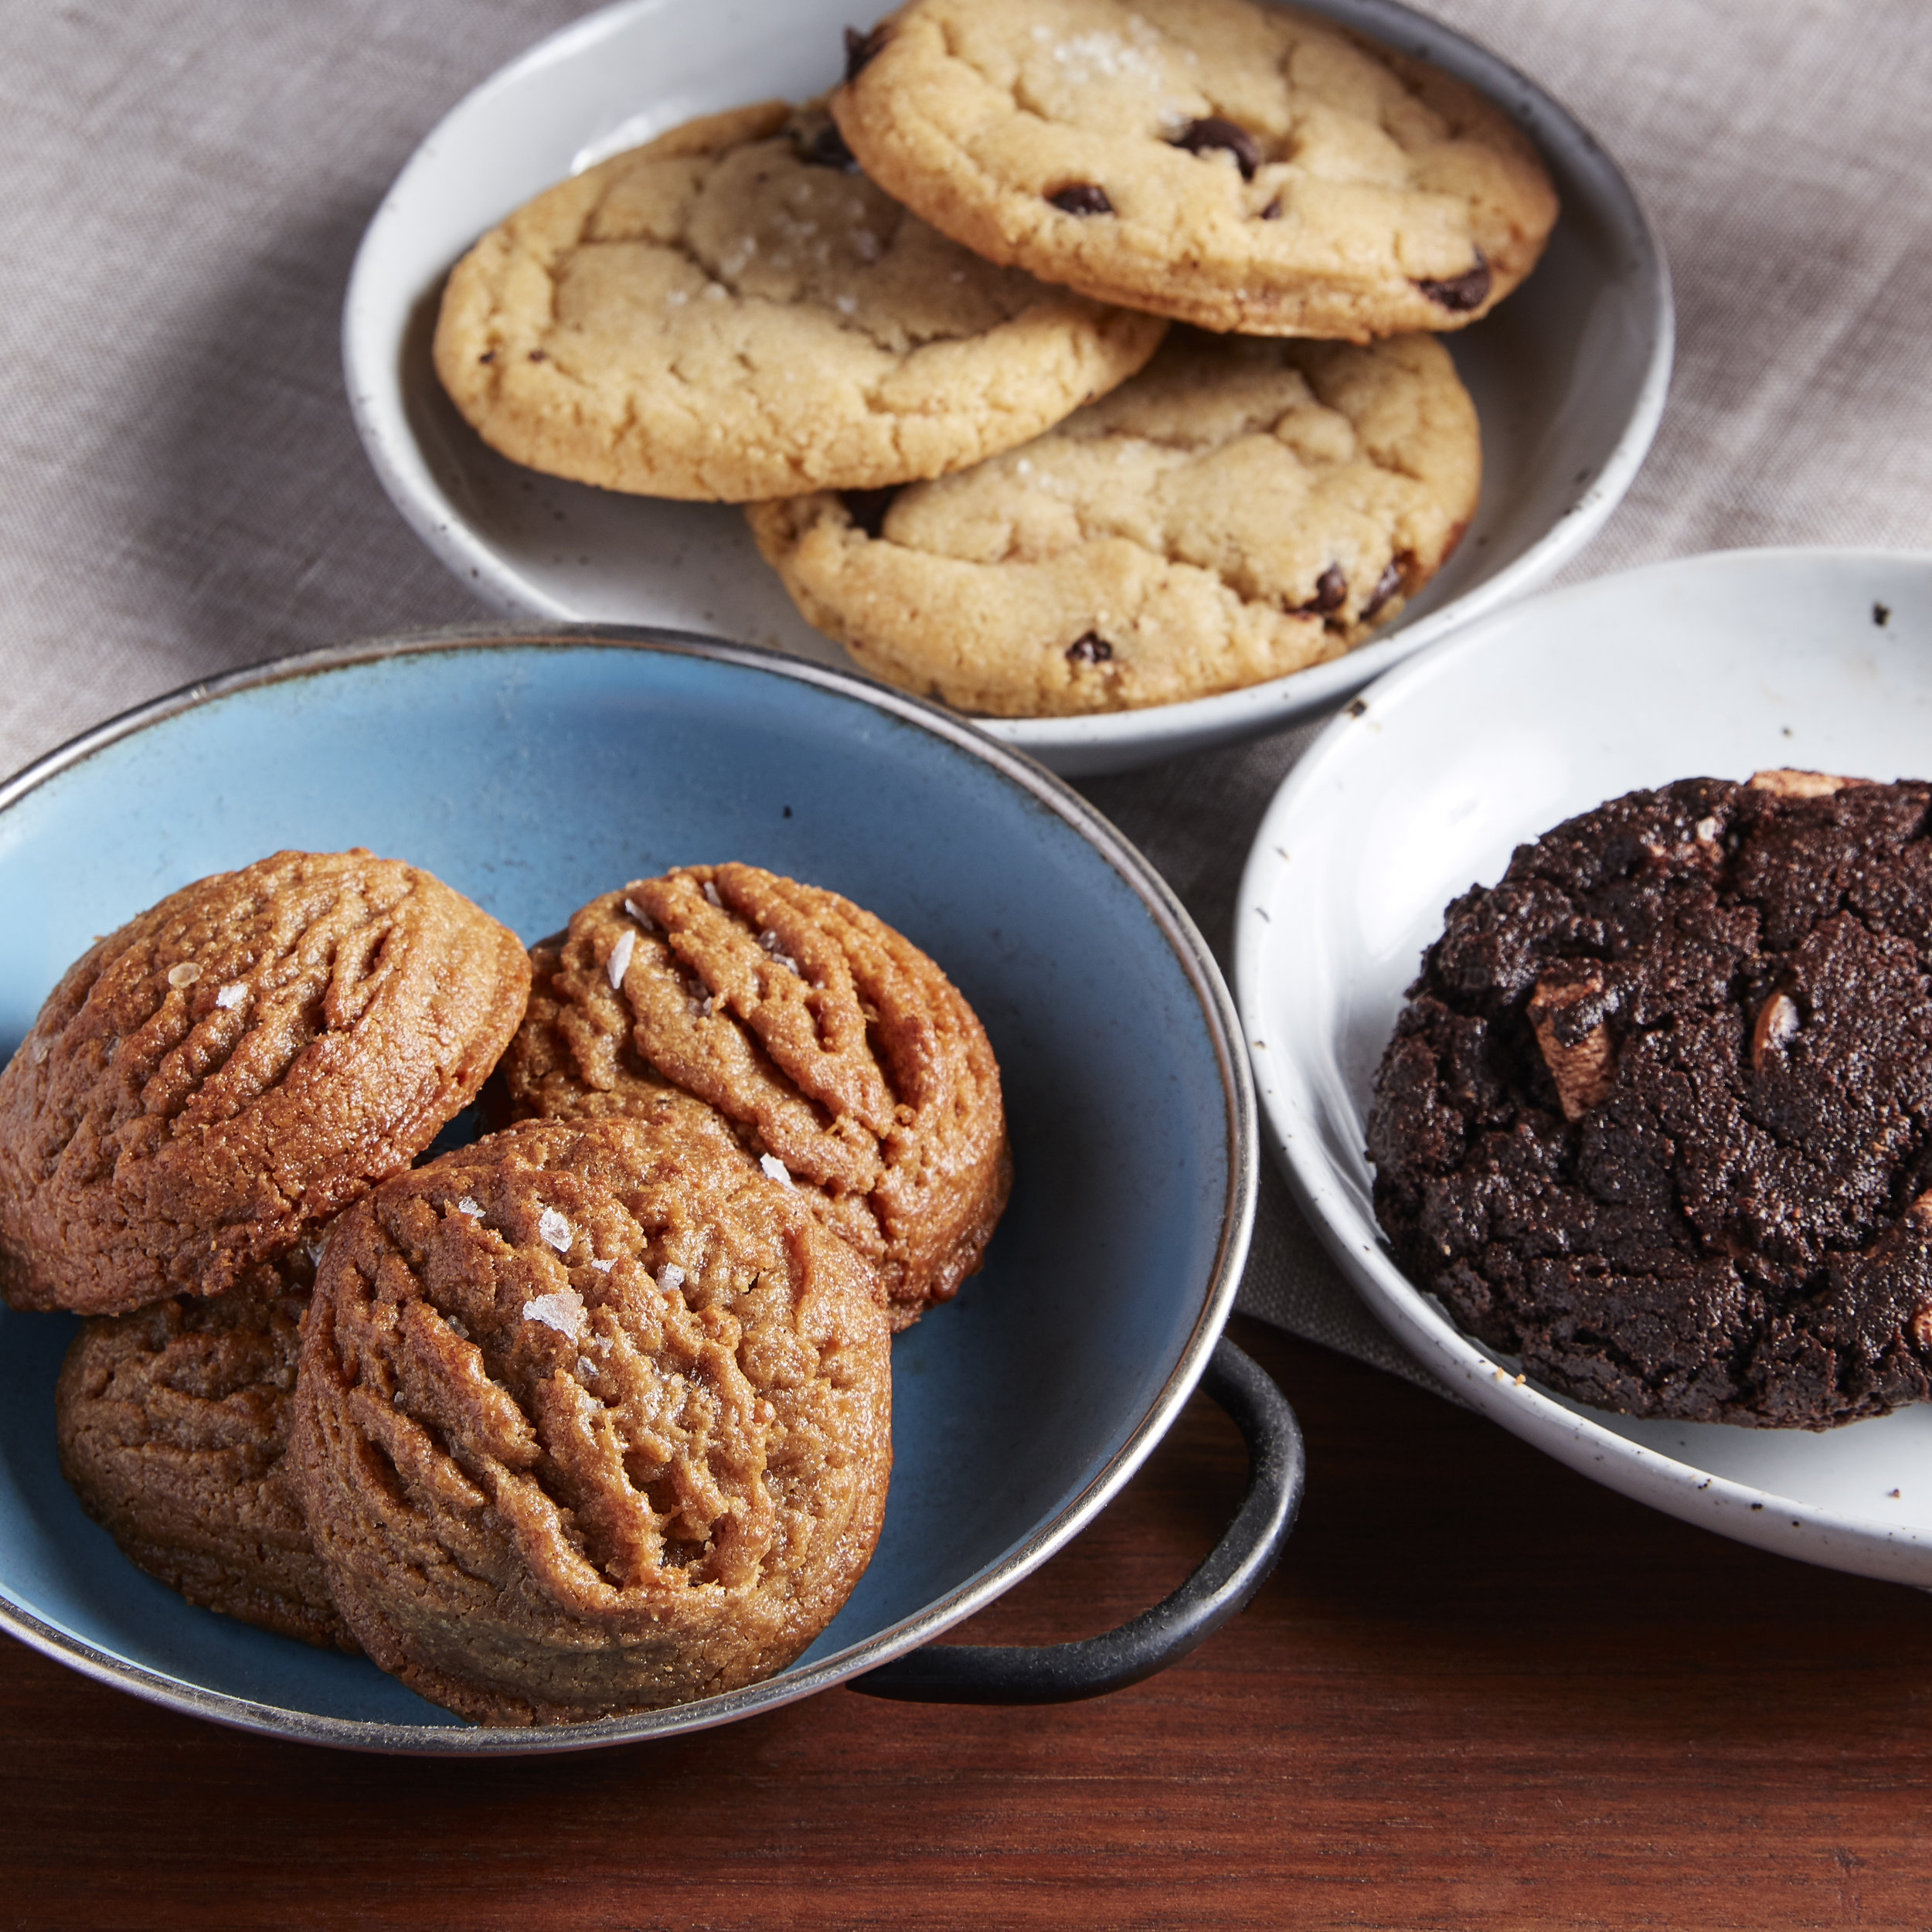 Pictured: Salted Peanut Butter Cookies, Salted Chocolate Chip Cookies, and Hot Chocolate Cookies.